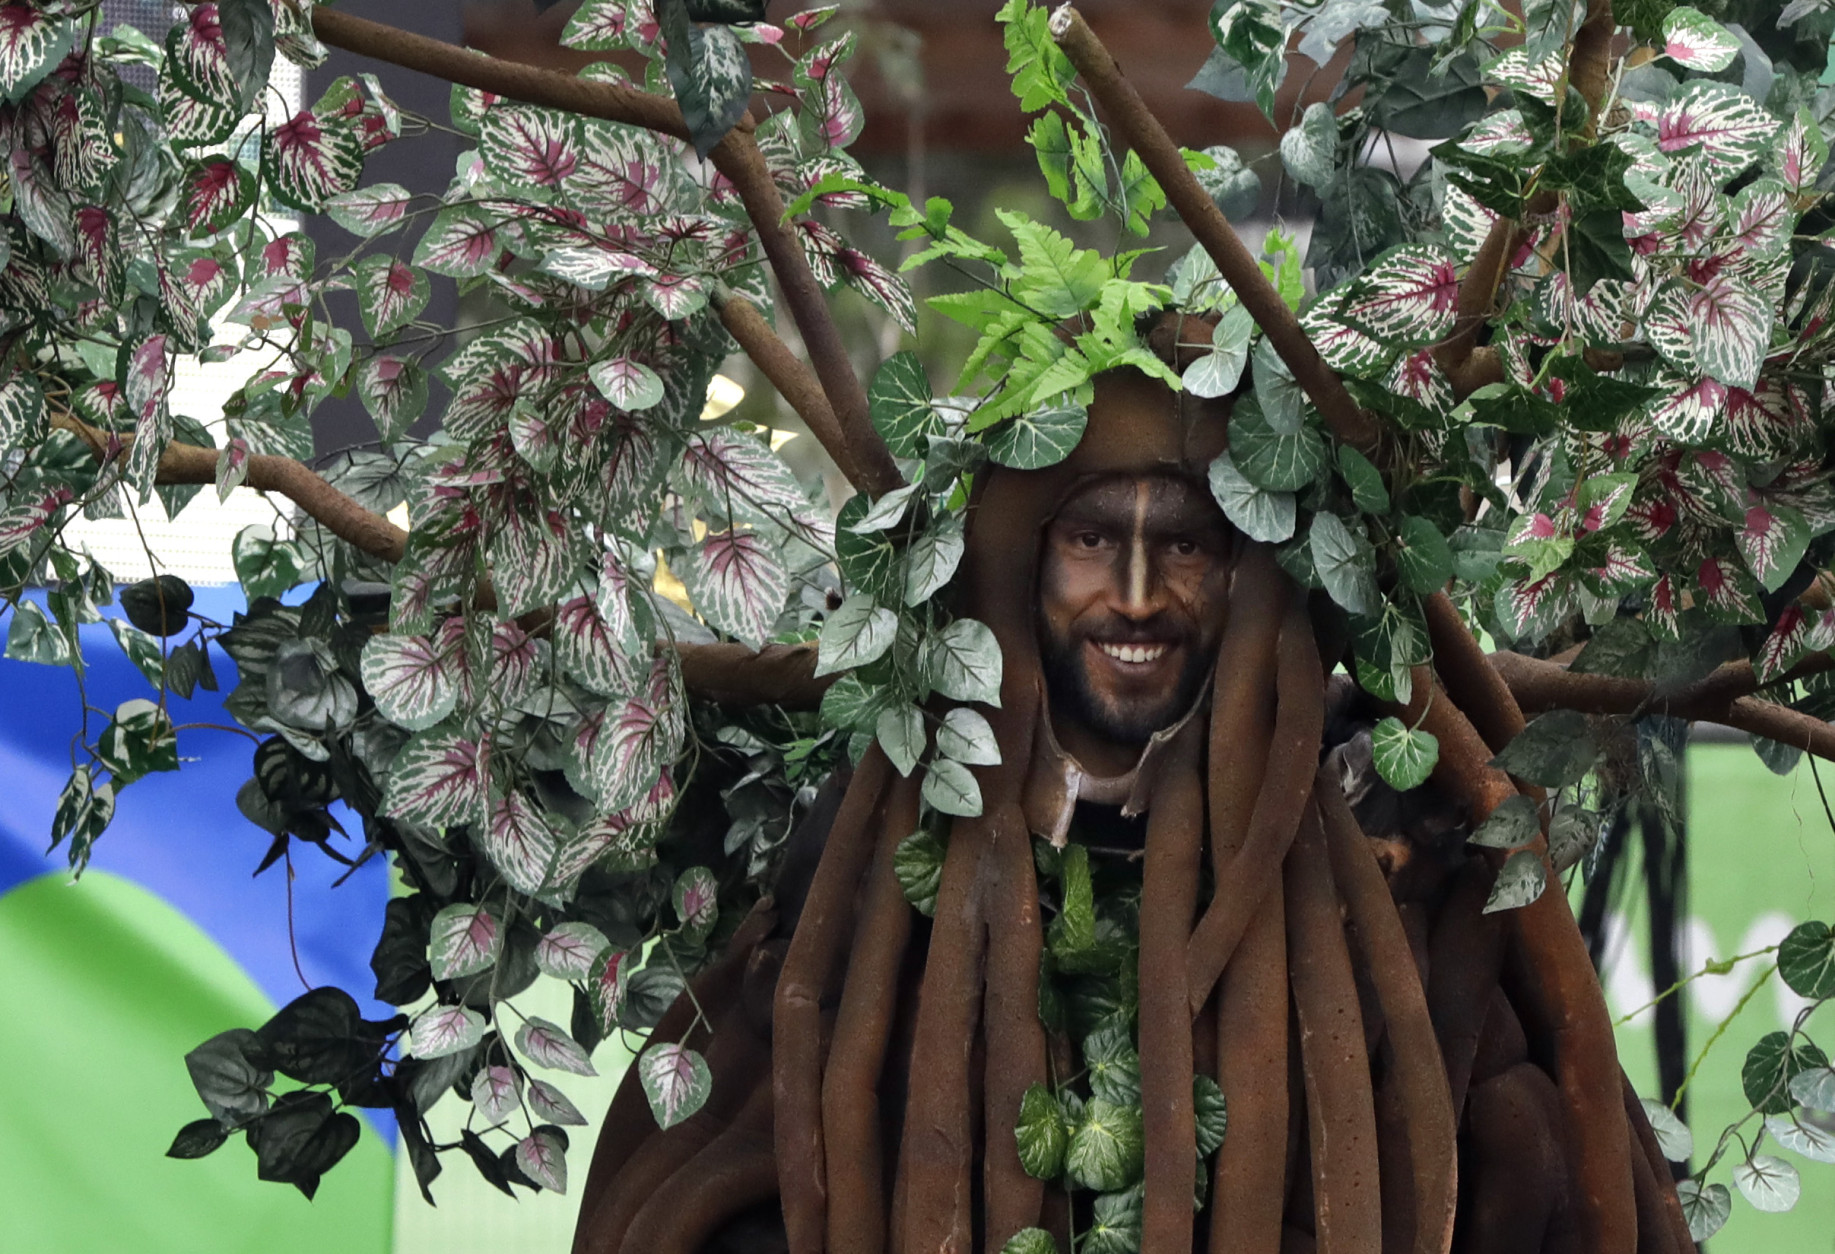 A performer is outfitted as a tree during a welcoming ceremony for Athletes at the 2016 Summer Olympics in Rio de Janeiro, Brazil, Wednesday, Aug. 3, 2016. (AP Photo/Robert F. Bukaty)